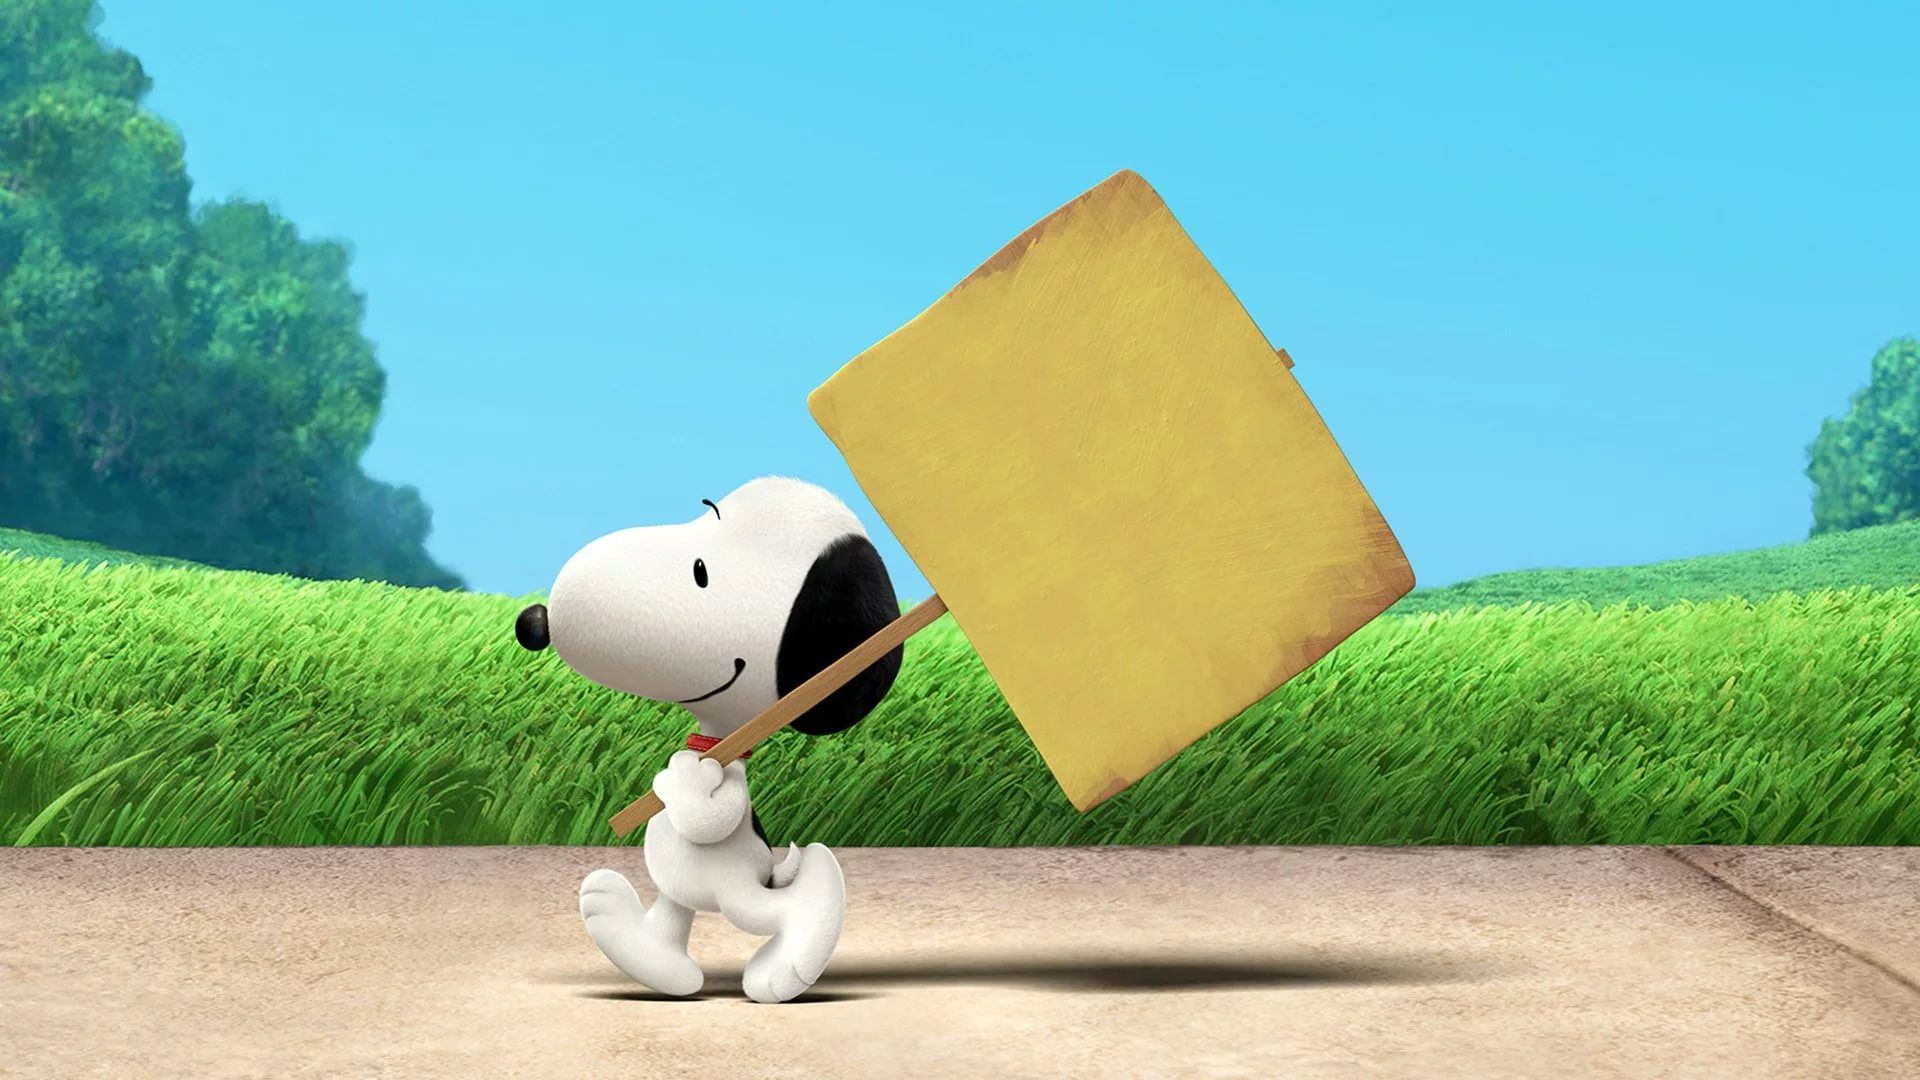 Peanuts Background Wallpaper